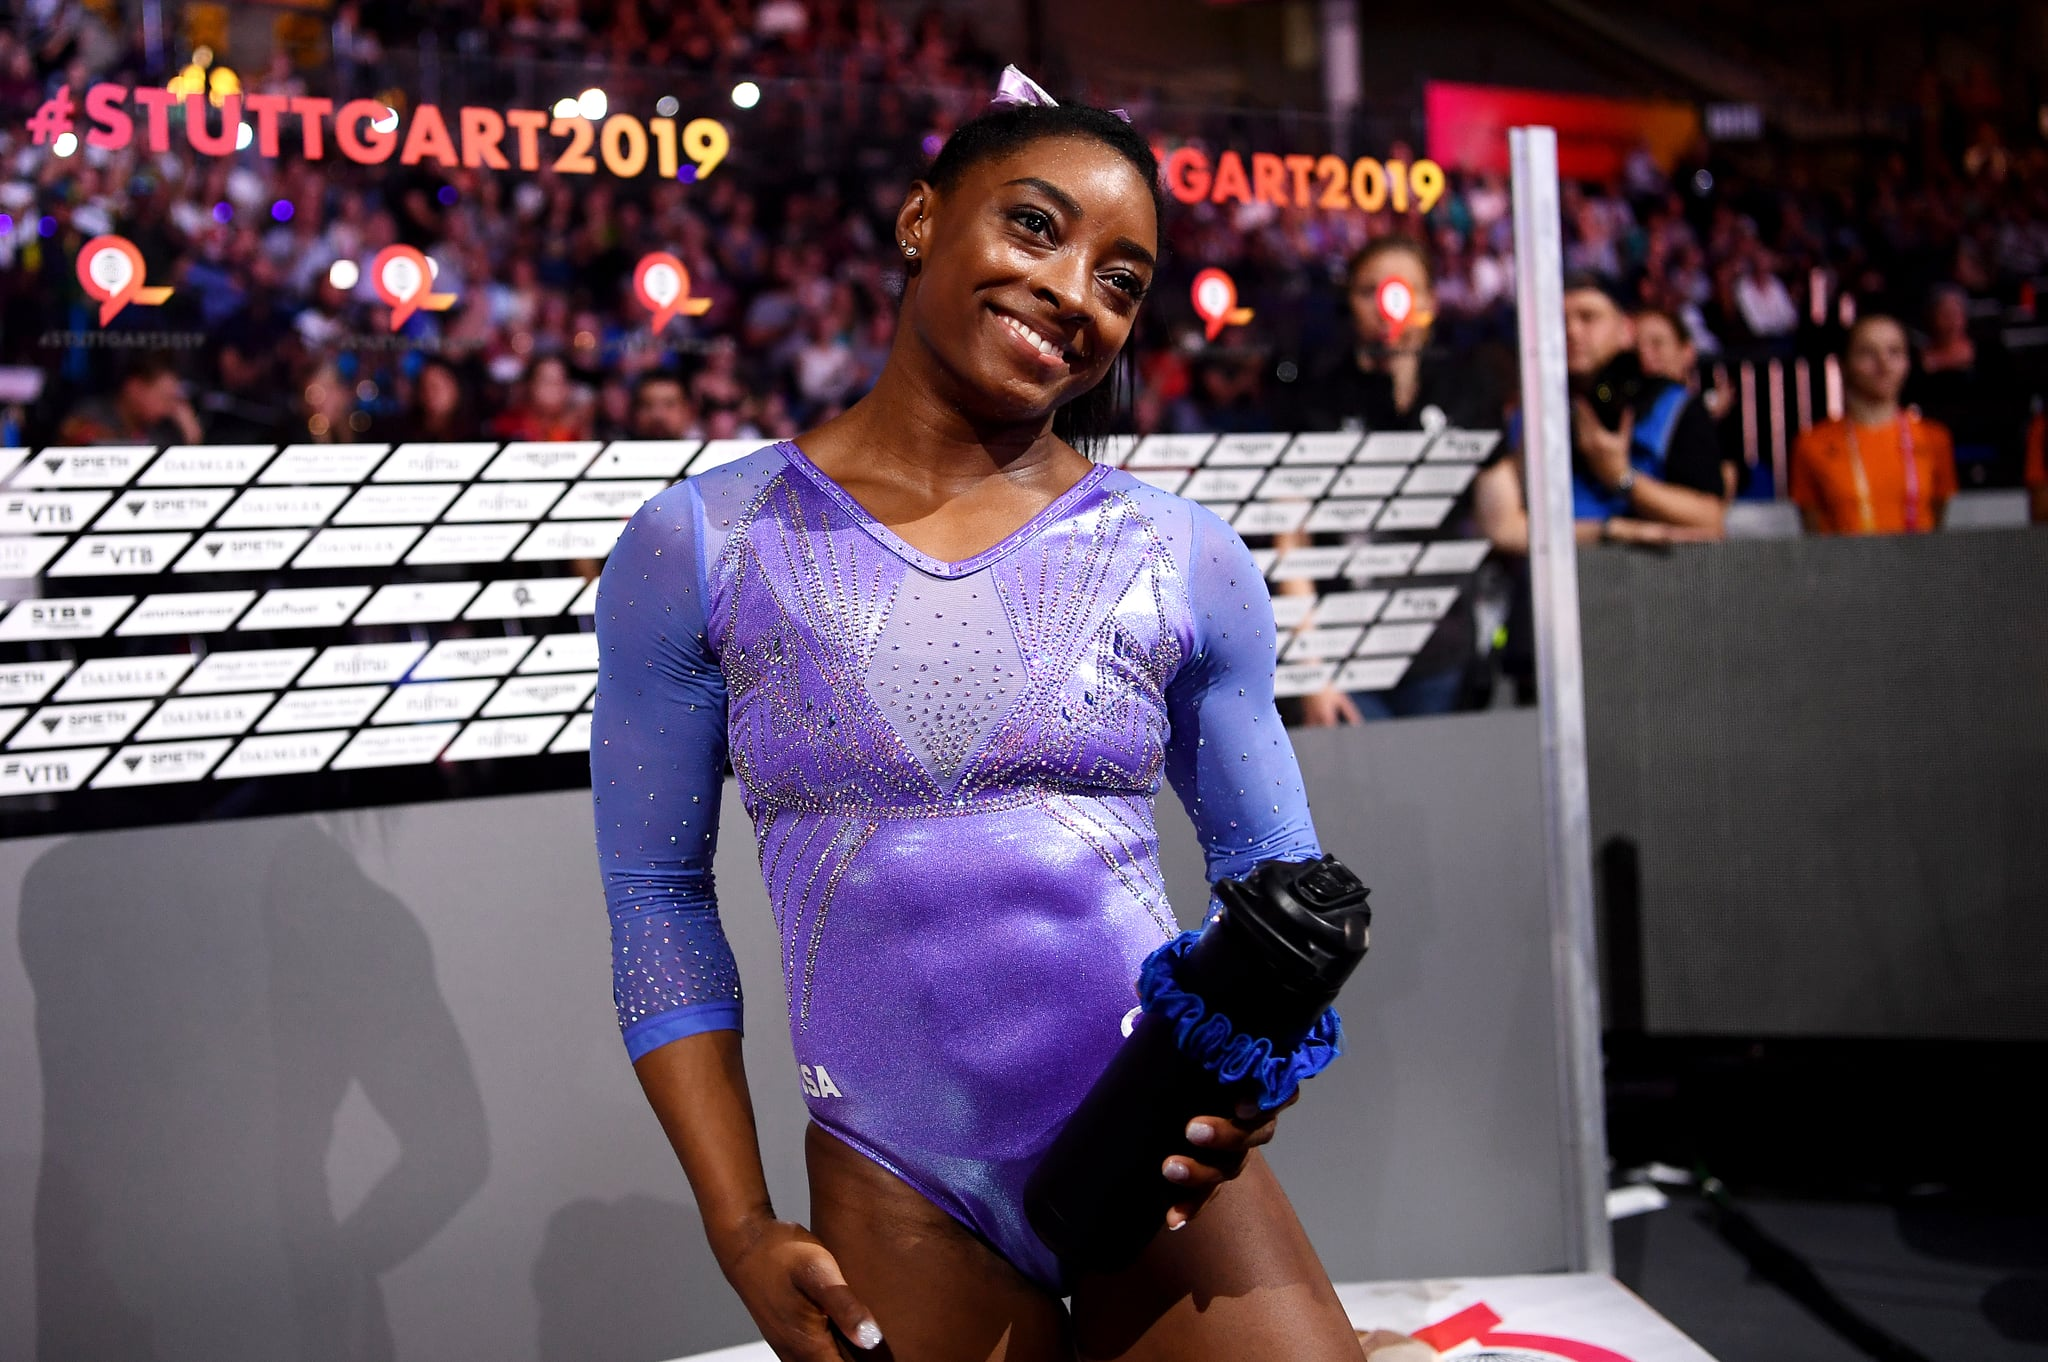 STUTTGART, GERMANY - OCTOBER 13: Simone Biles of The United States celebrates winning gold in Women's Floor Final during day 10 of the 49th FIG Artistic Gymnastics World Championships at Hanns-Martin-Schleyer-Halle on October 13, 2019 in Stuttgart, Germany. (Photo by Laurence Griffiths/Getty Images)